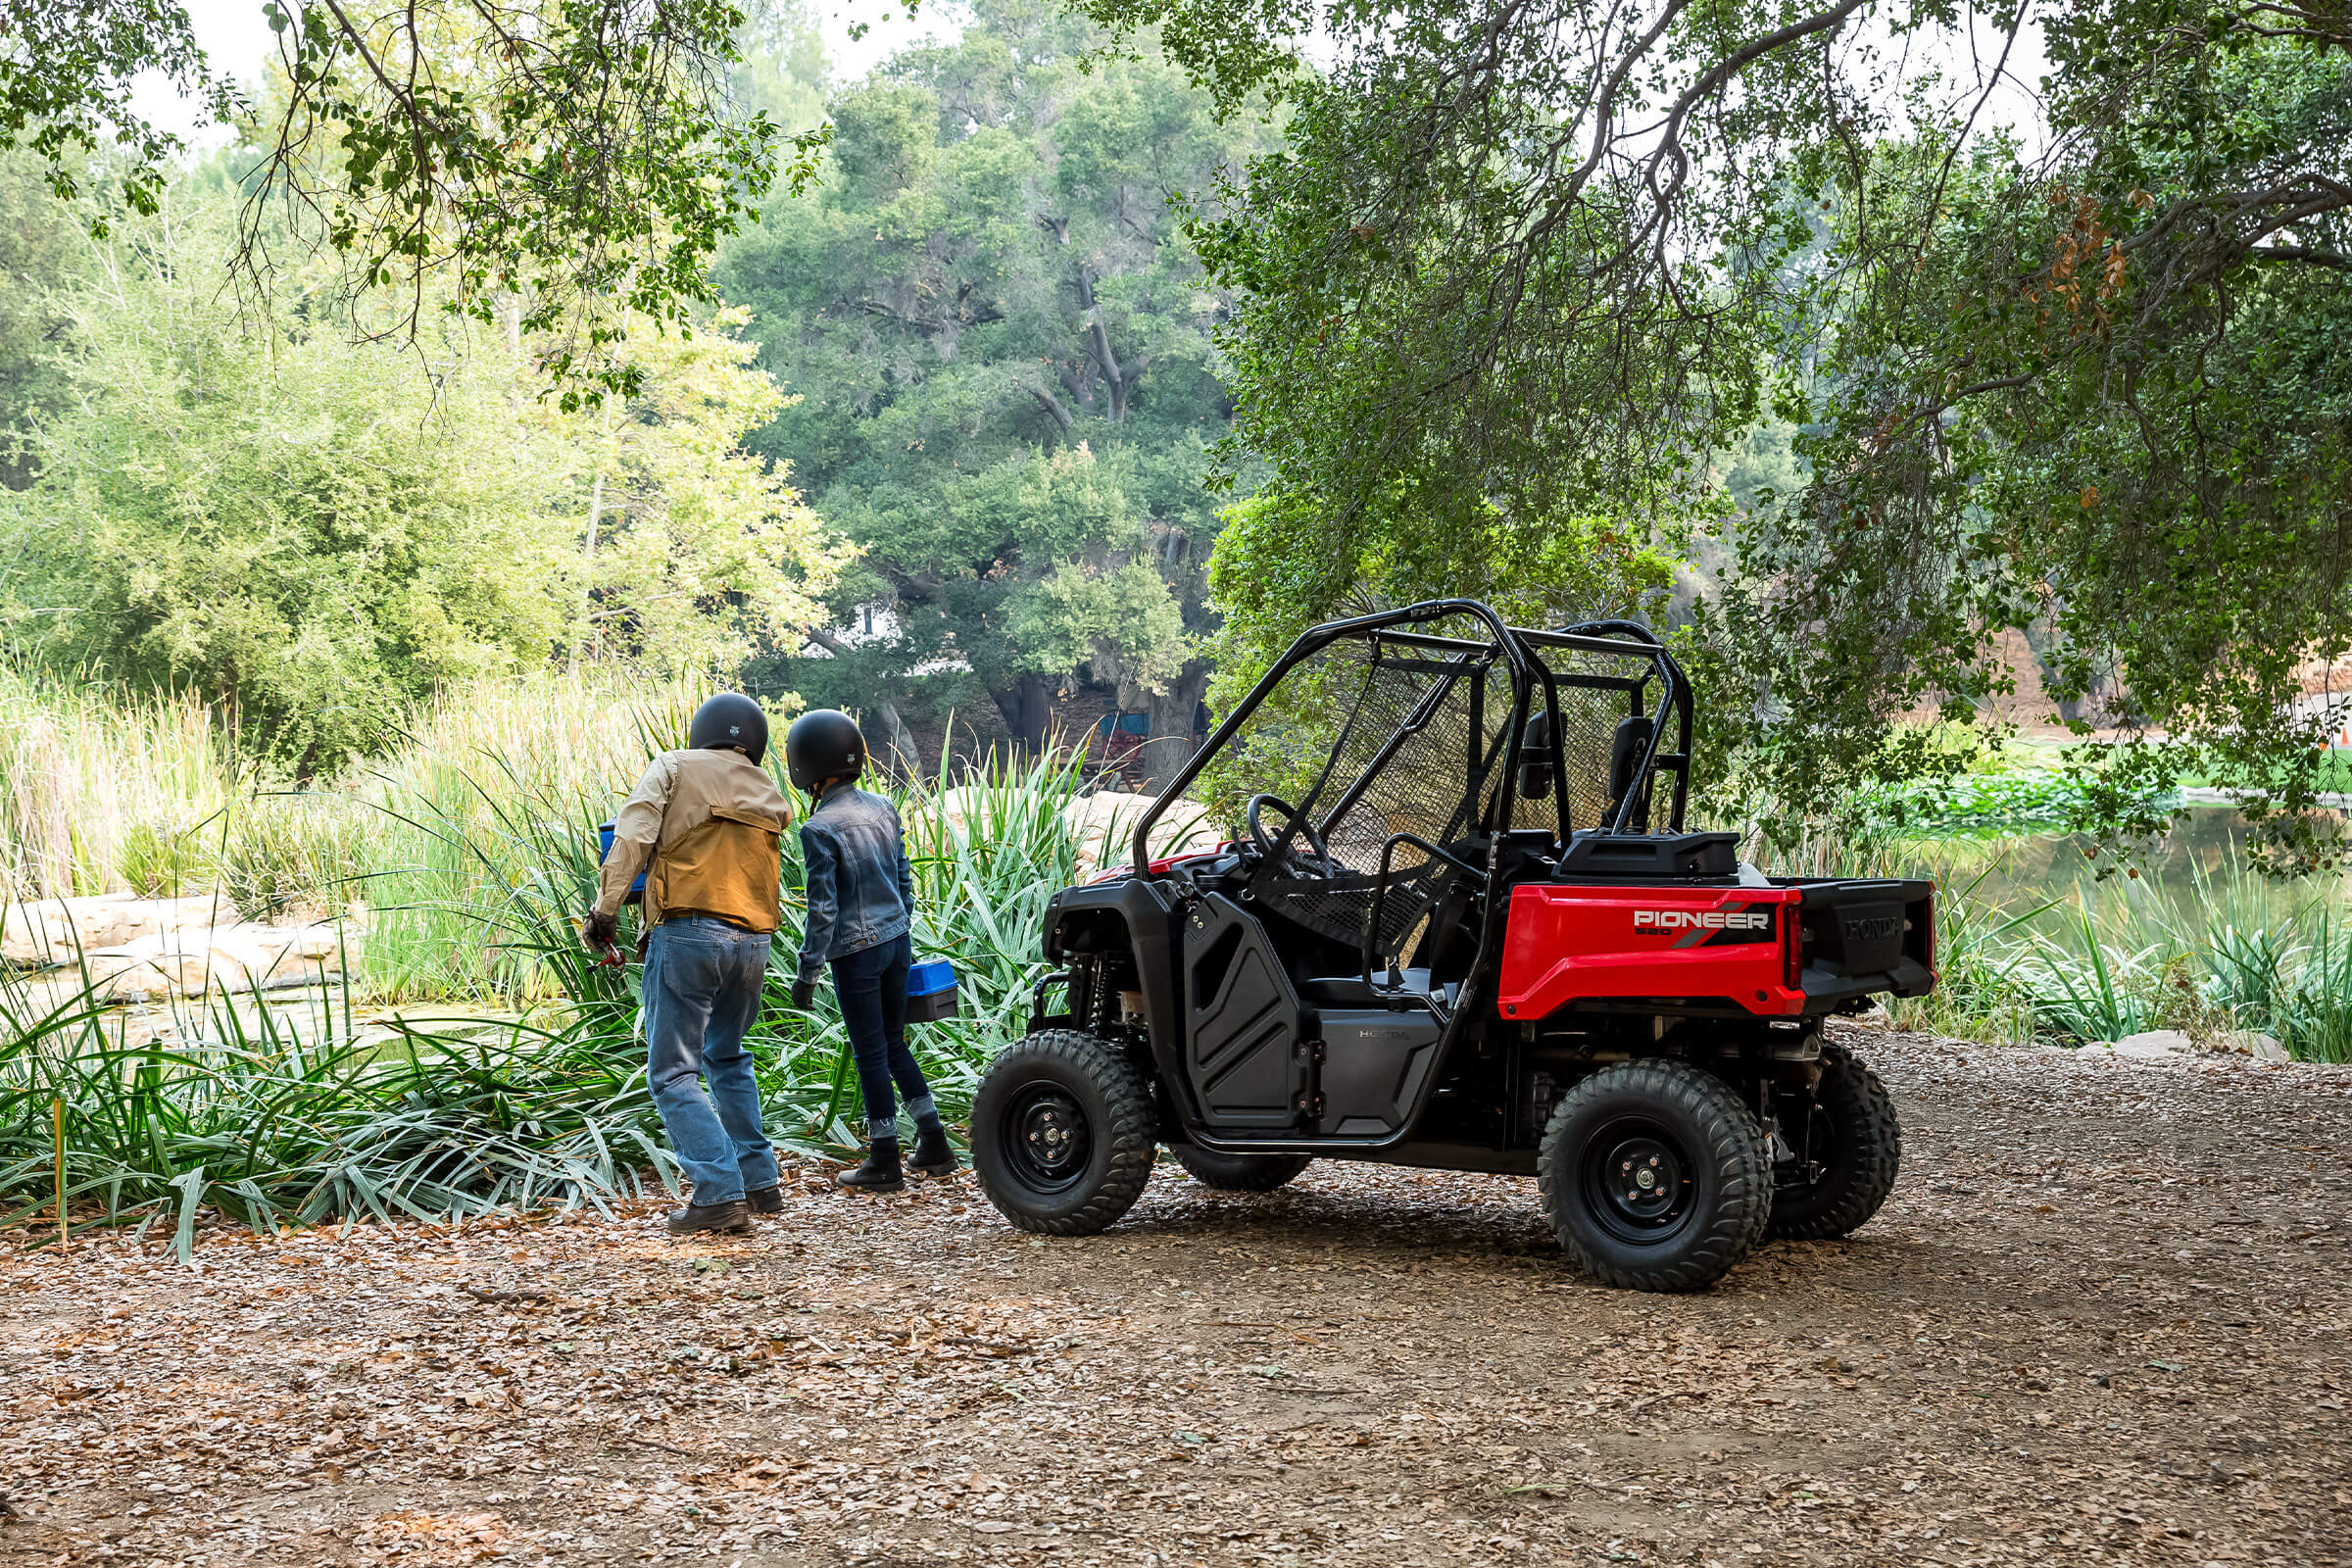 2021 Honda Pioneer 520 in Paso Robles, California - Photo 2